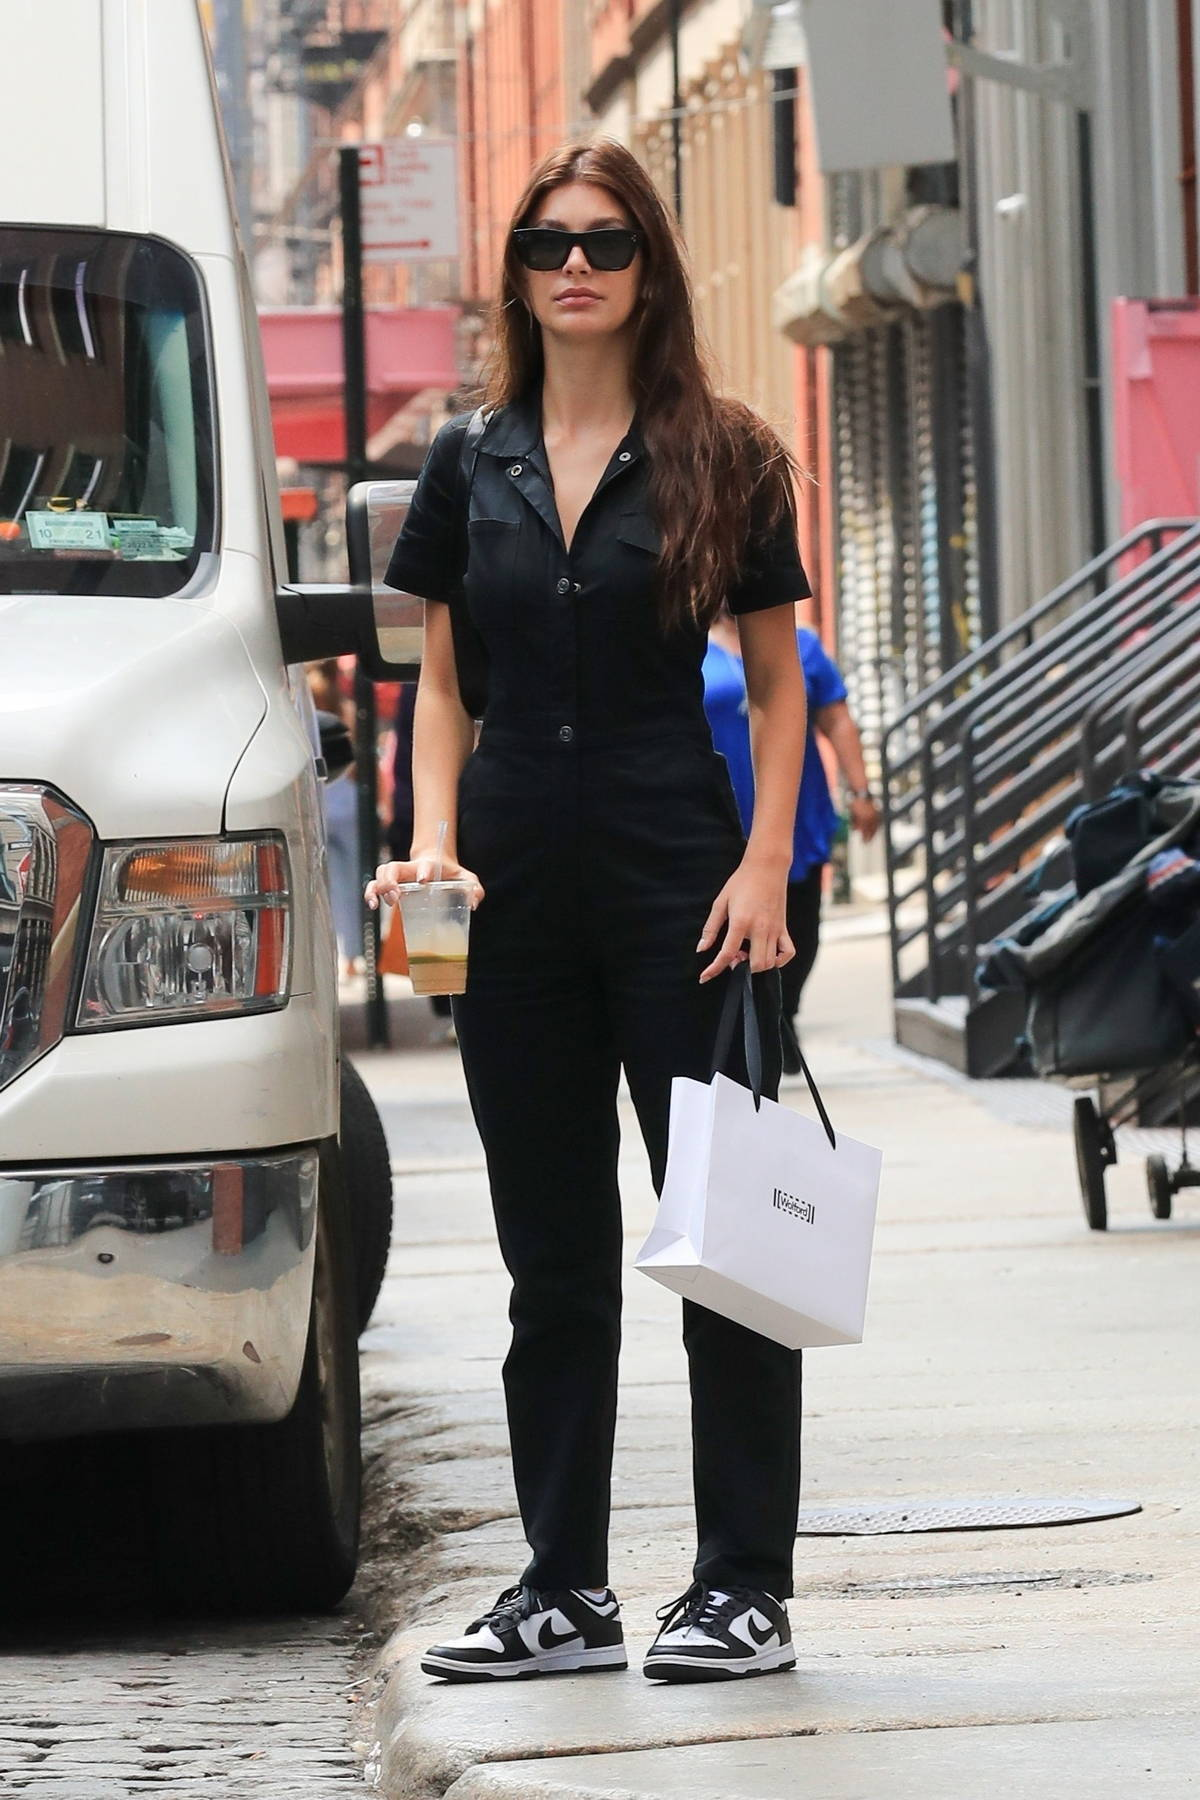 Camila Morrone and Leonardo DiCaprio step out for some coffee before shopping at a lingerie store in SoHo, New York